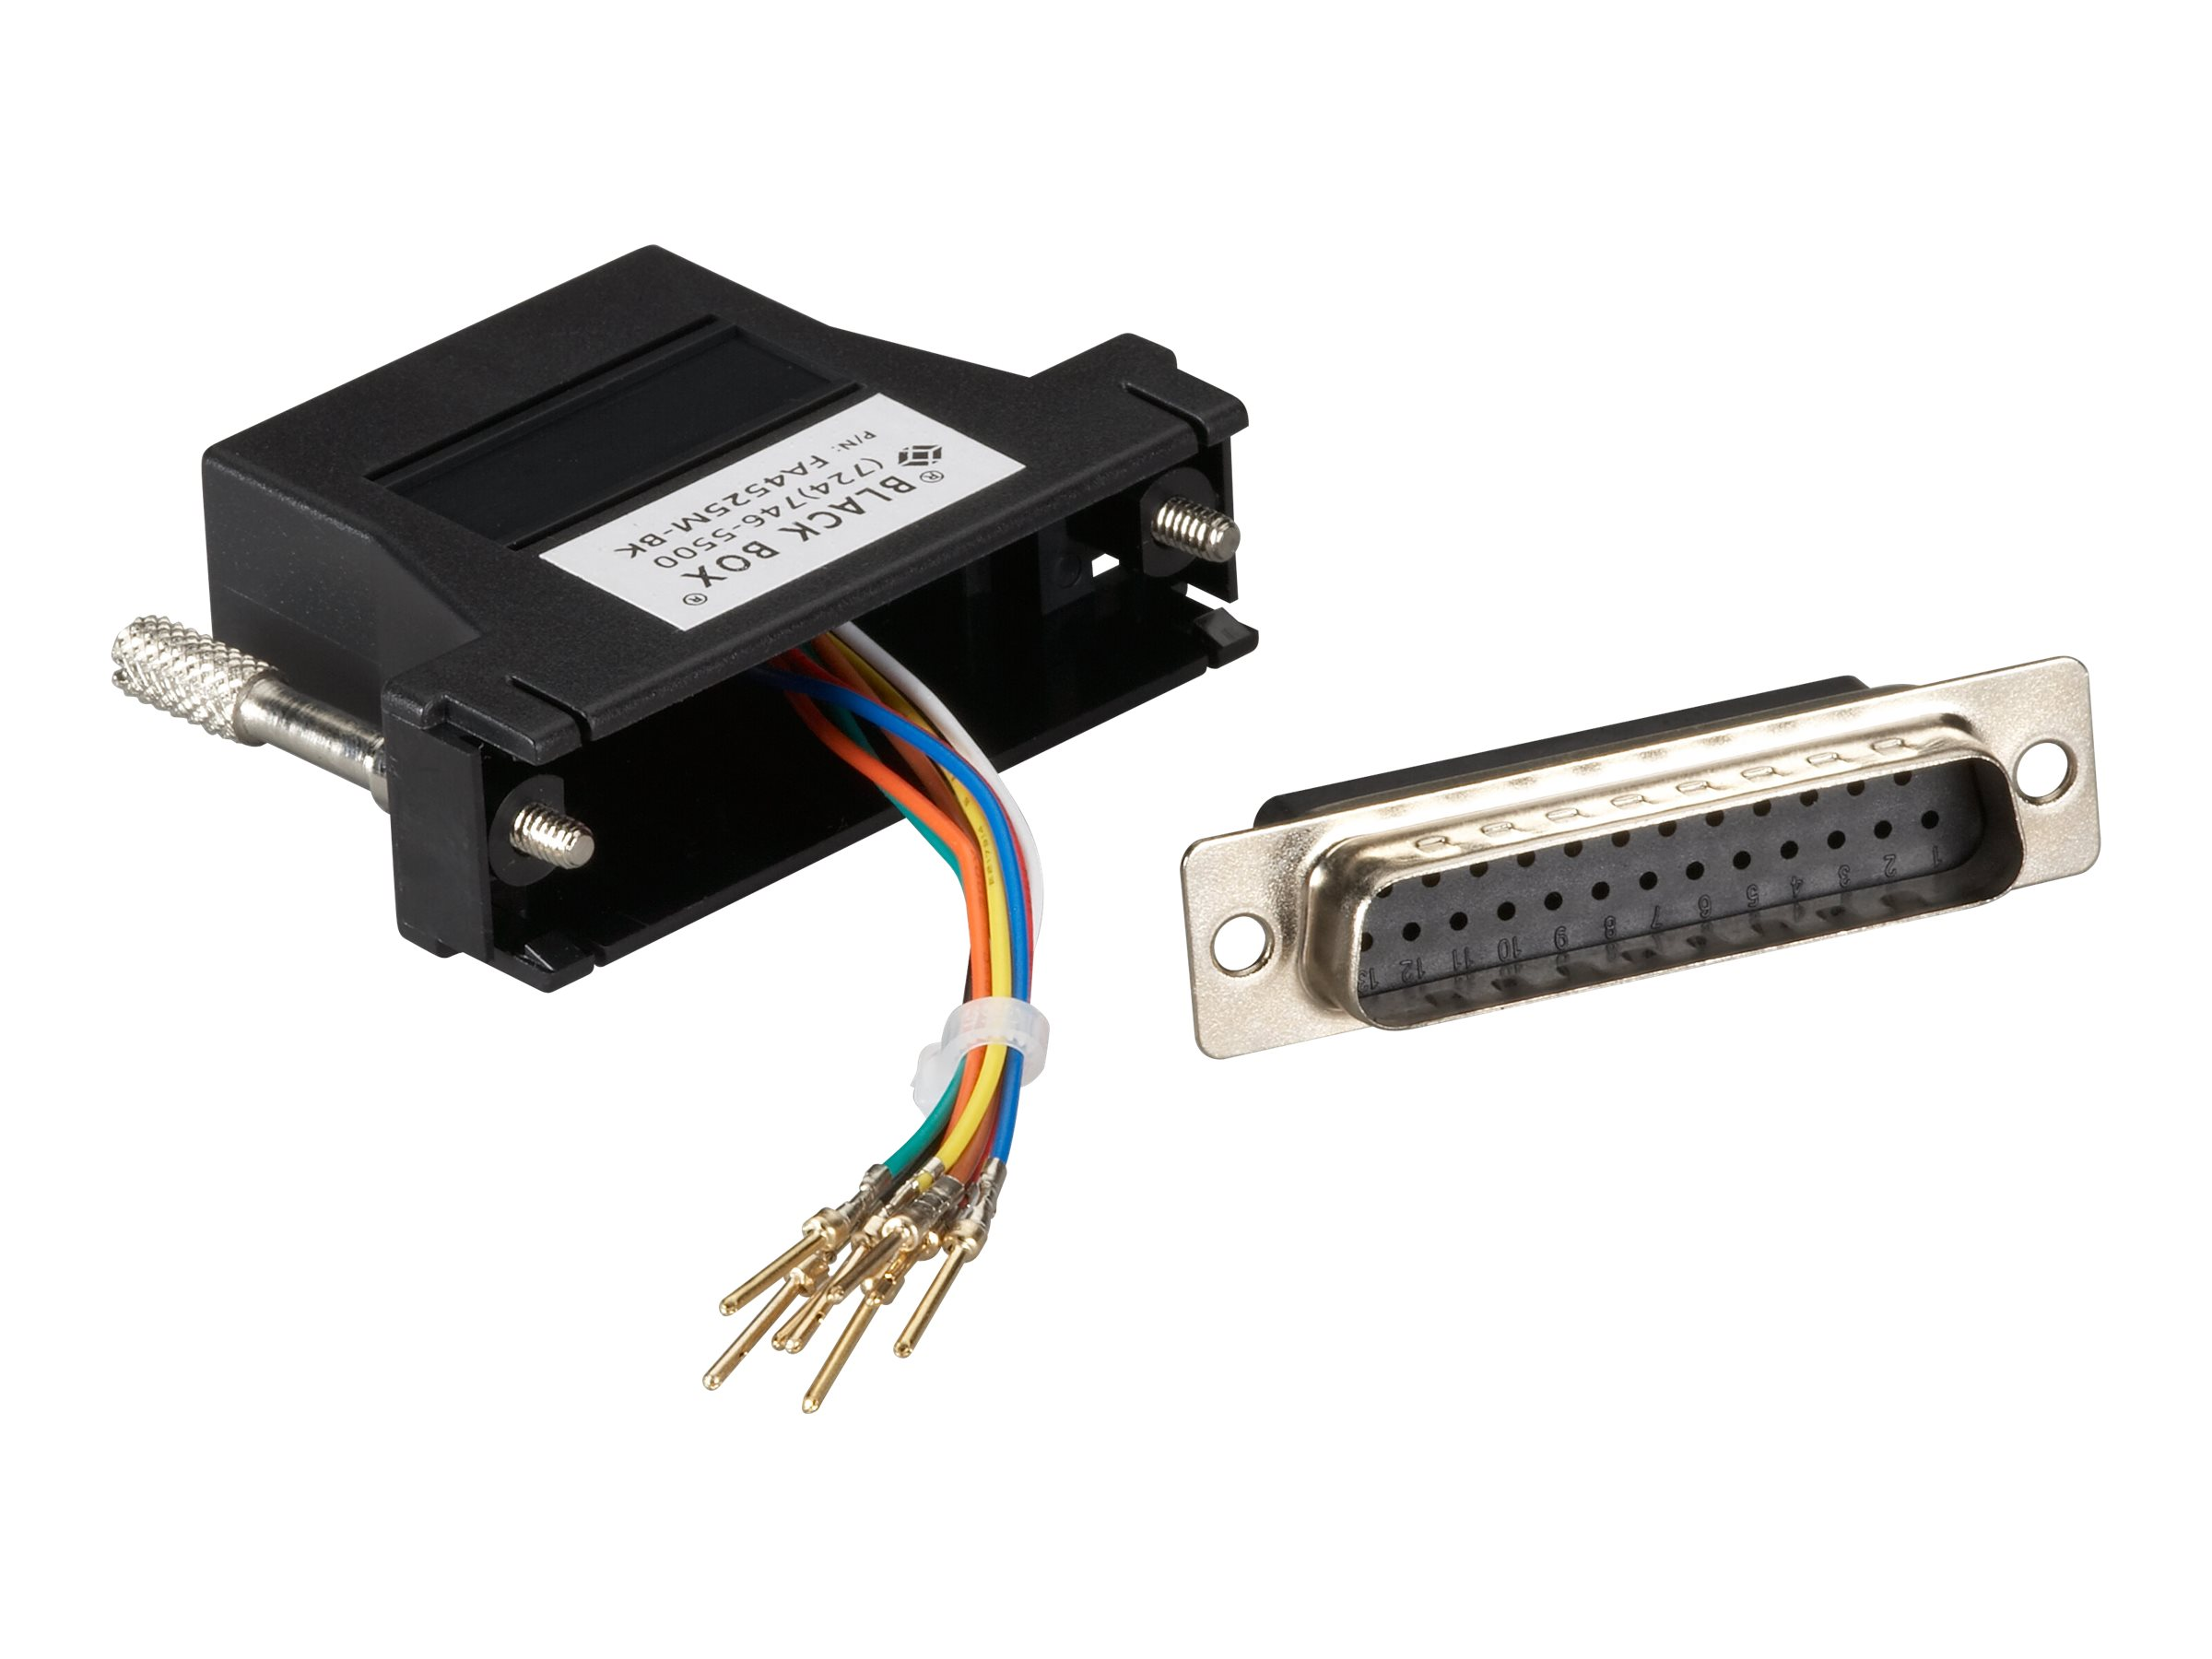 Black Box Colored Modular Adapter serial RS-232 cable - black